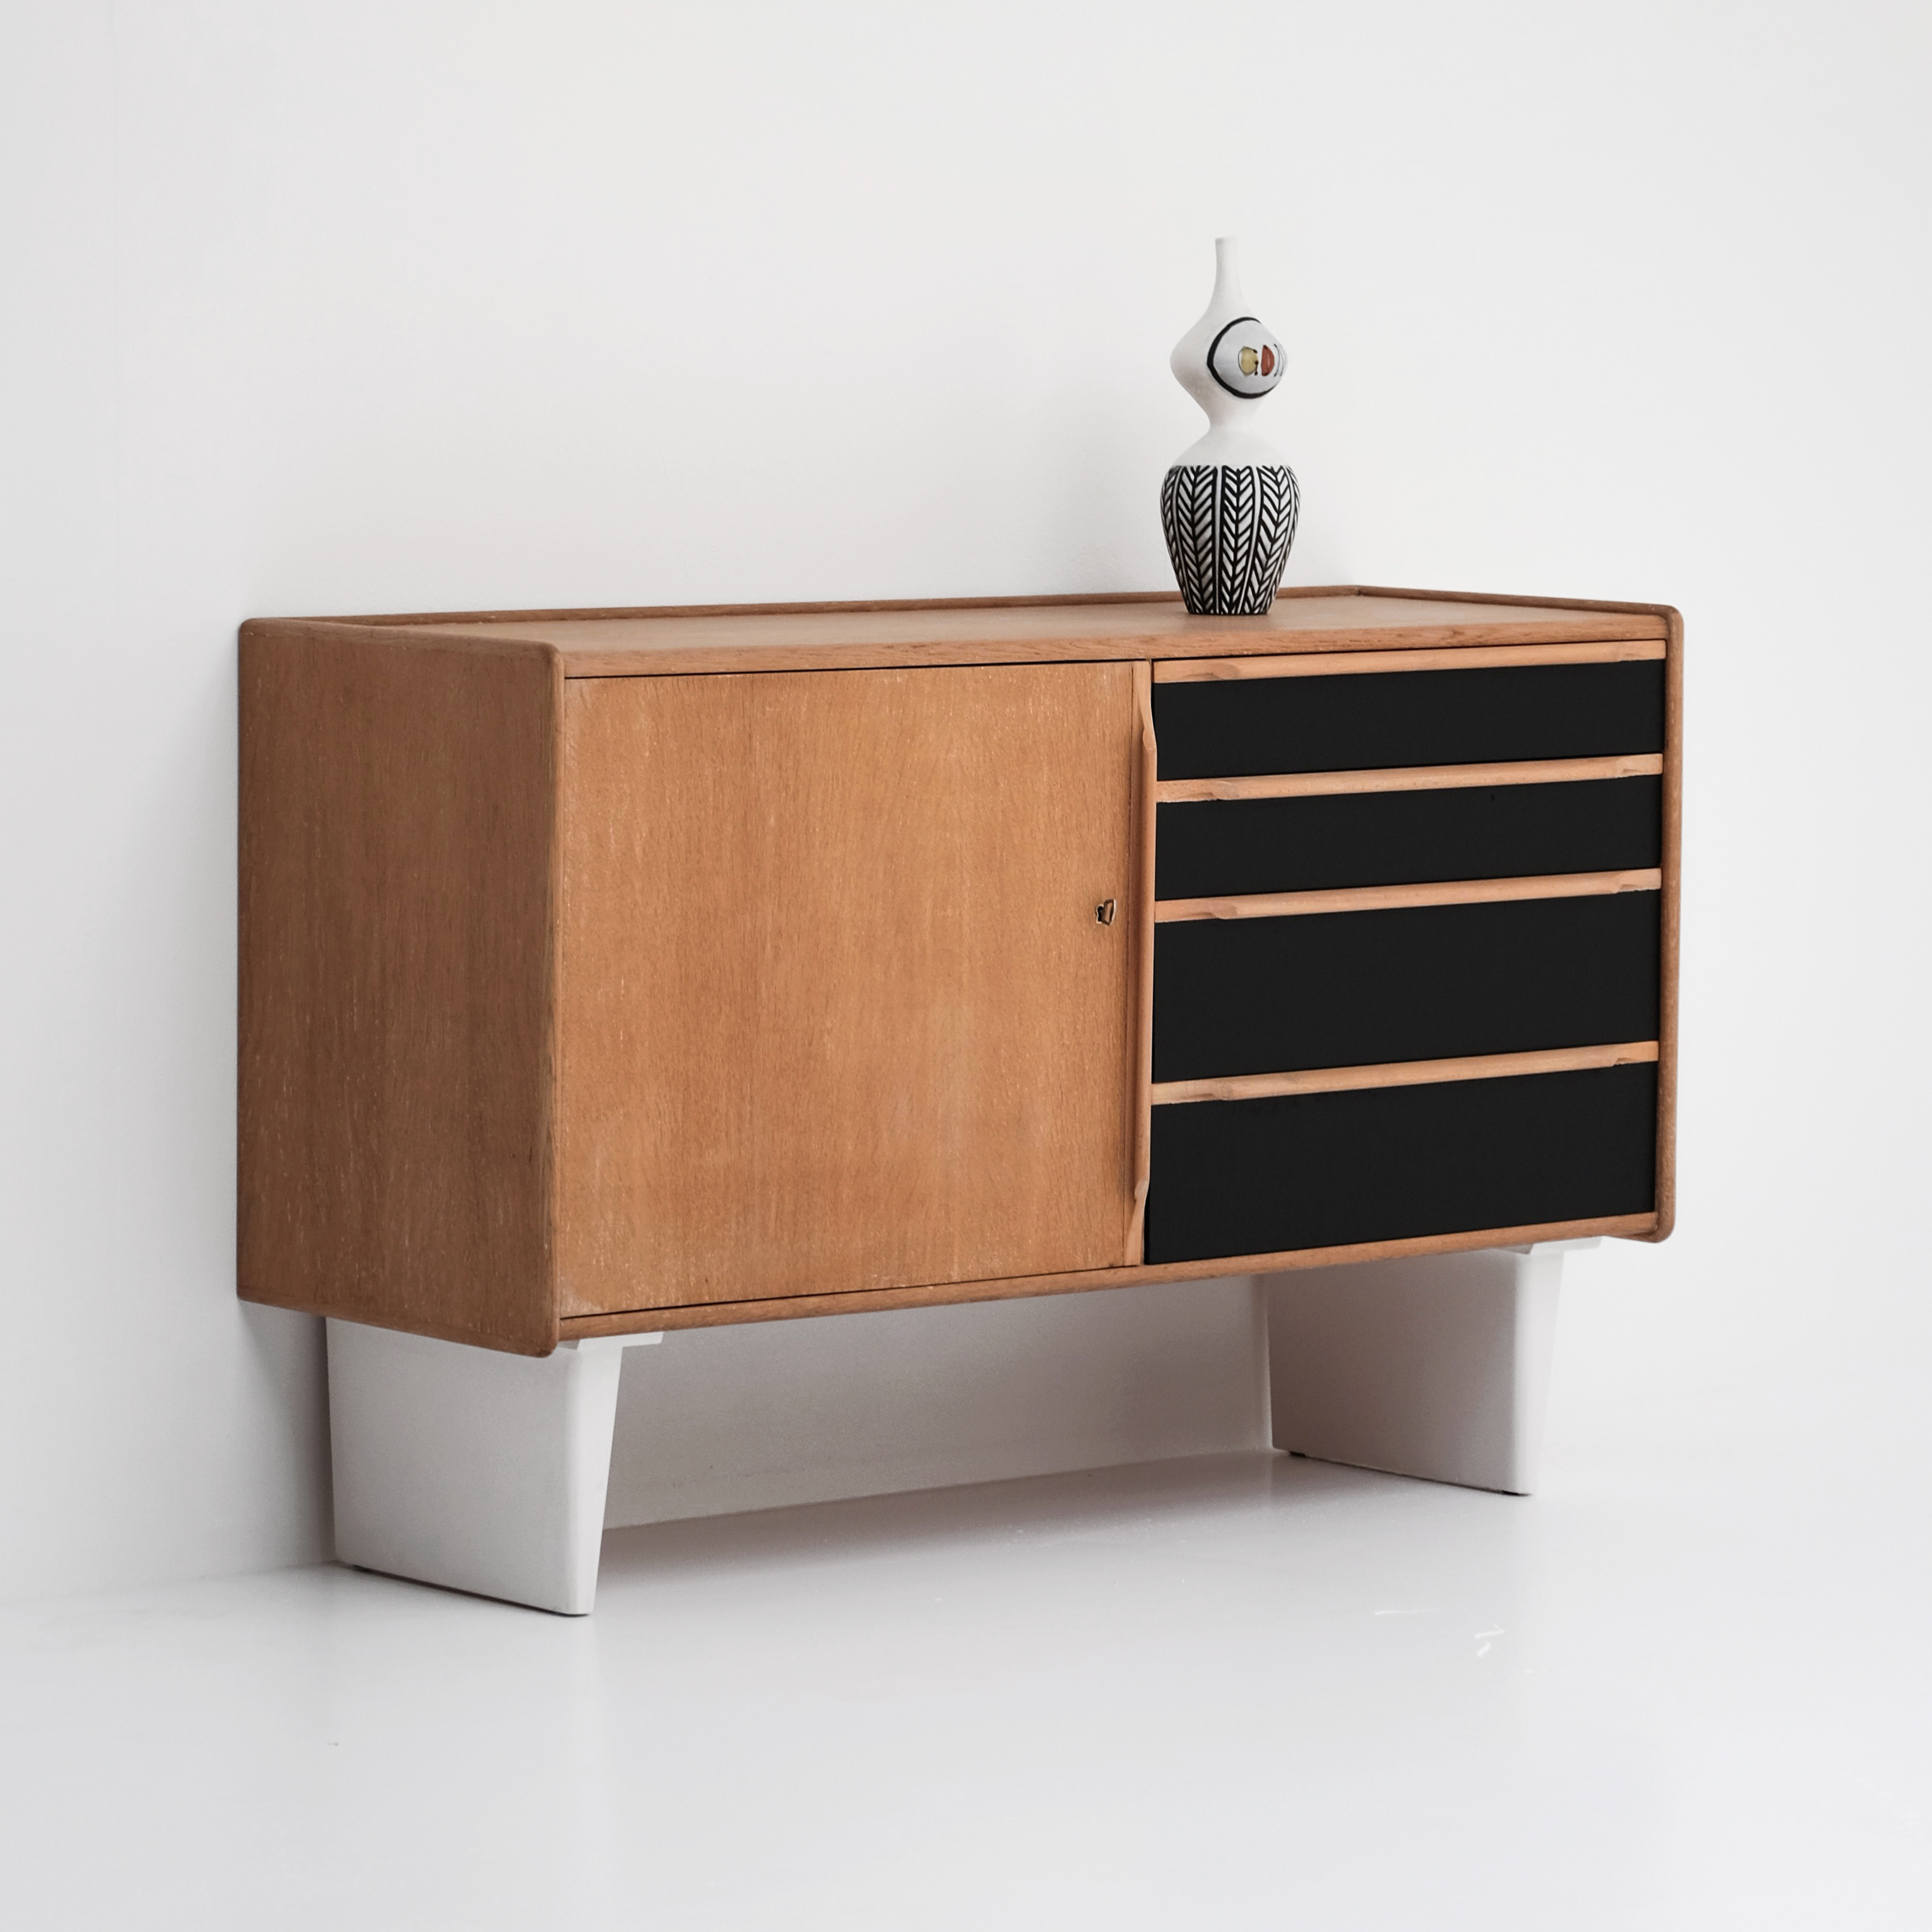 UMS Pastoe Sideboard Cees Braackman 1950s